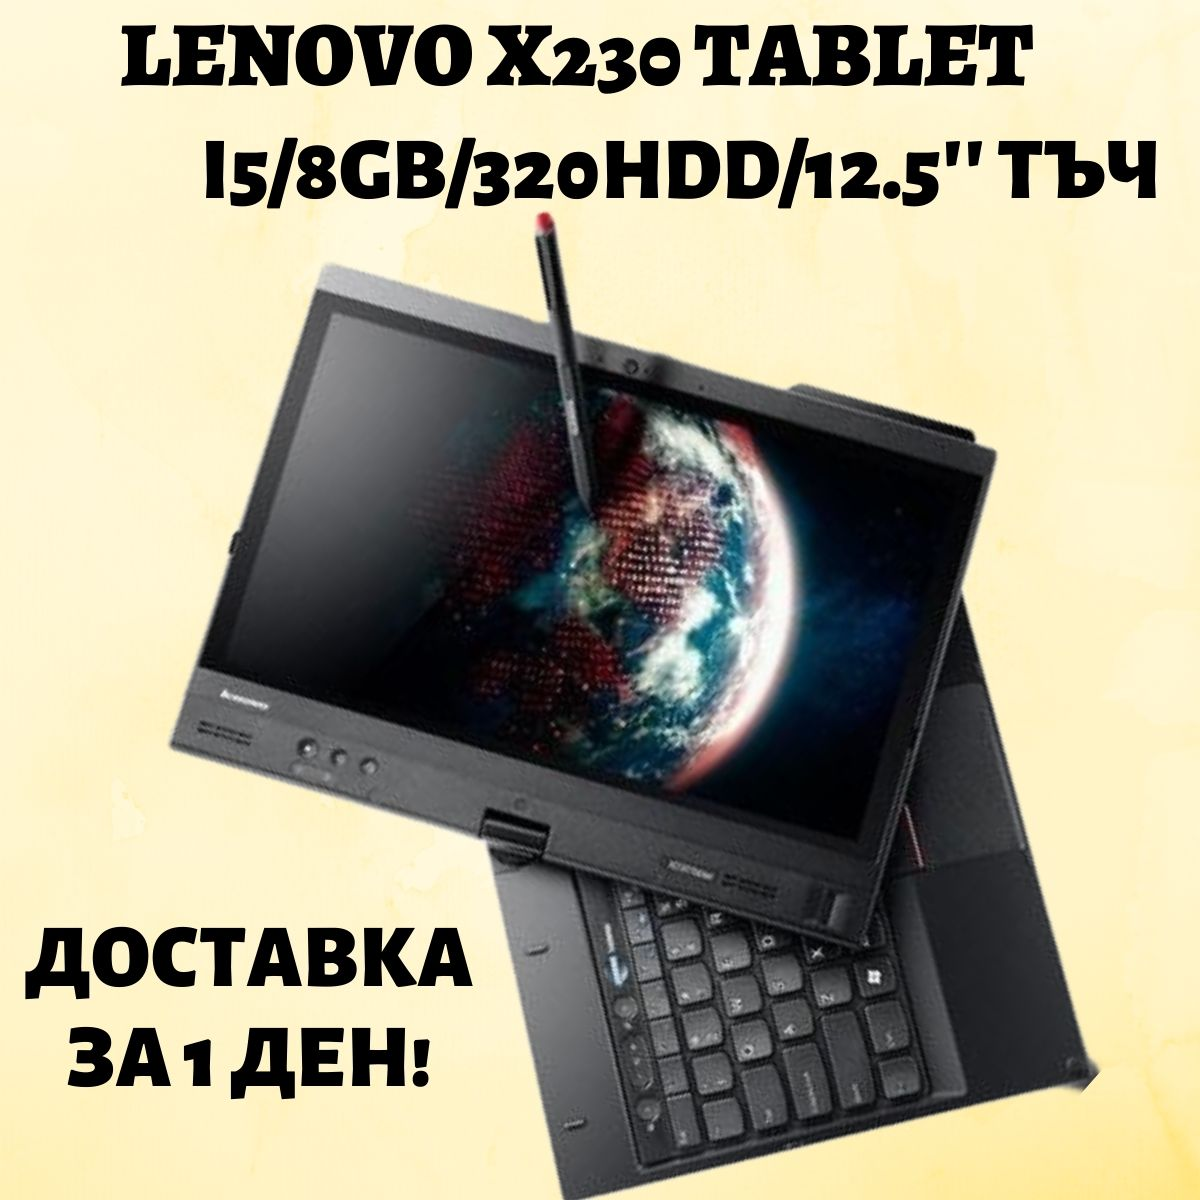 Lenovo x230 tablet